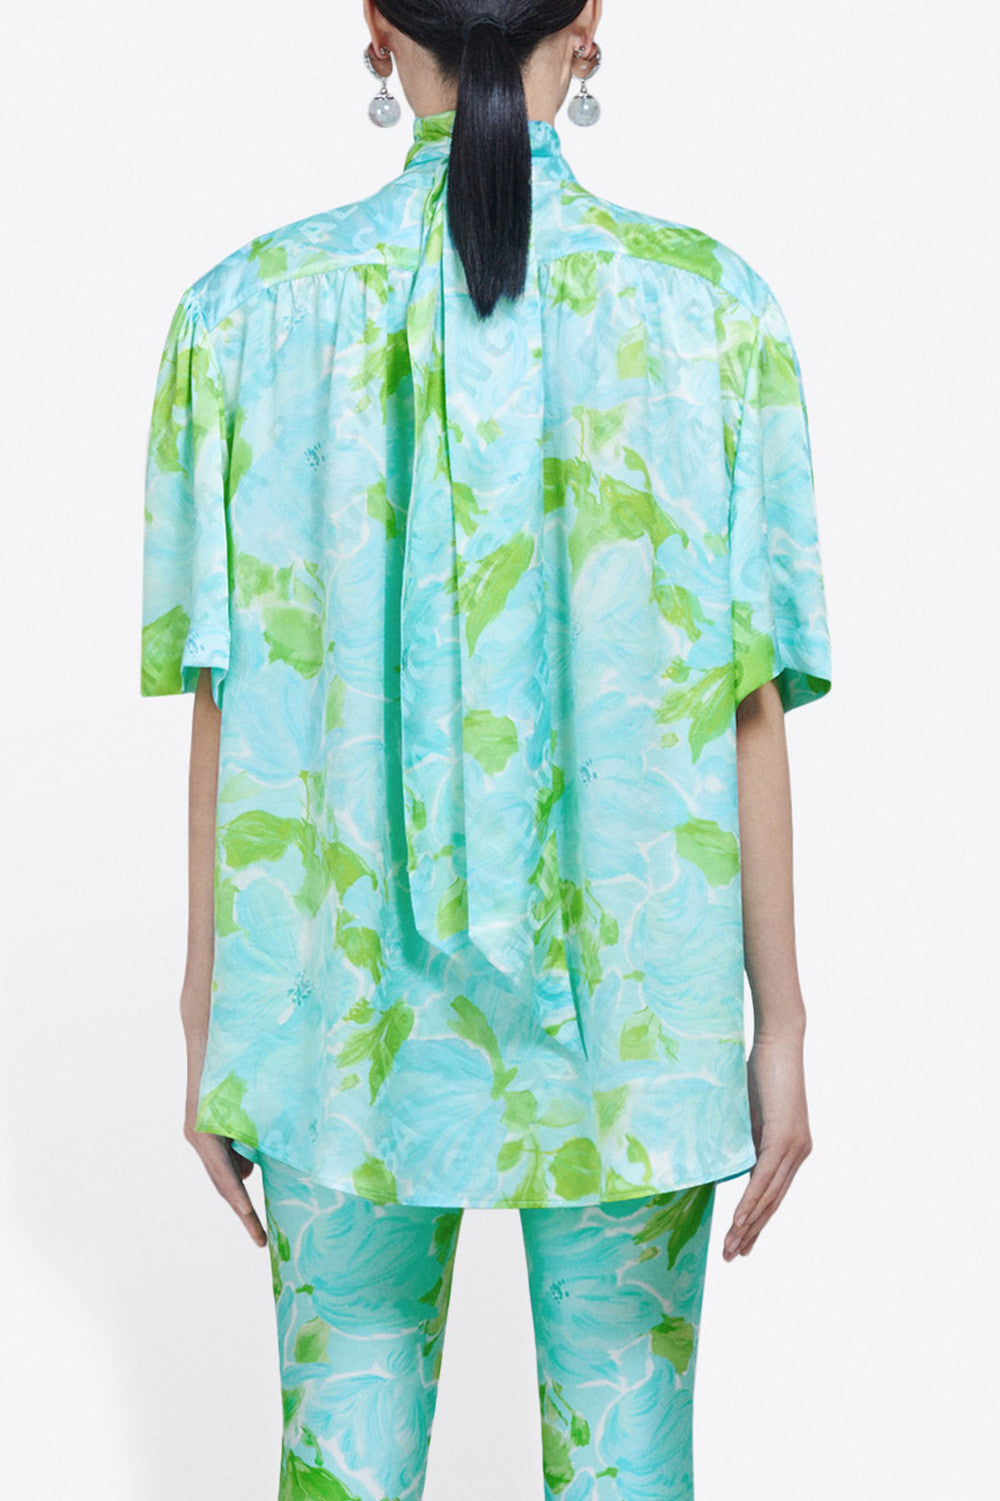 BALENCIAGA - Short Sleeve Scarf Blouse - Blue/Green